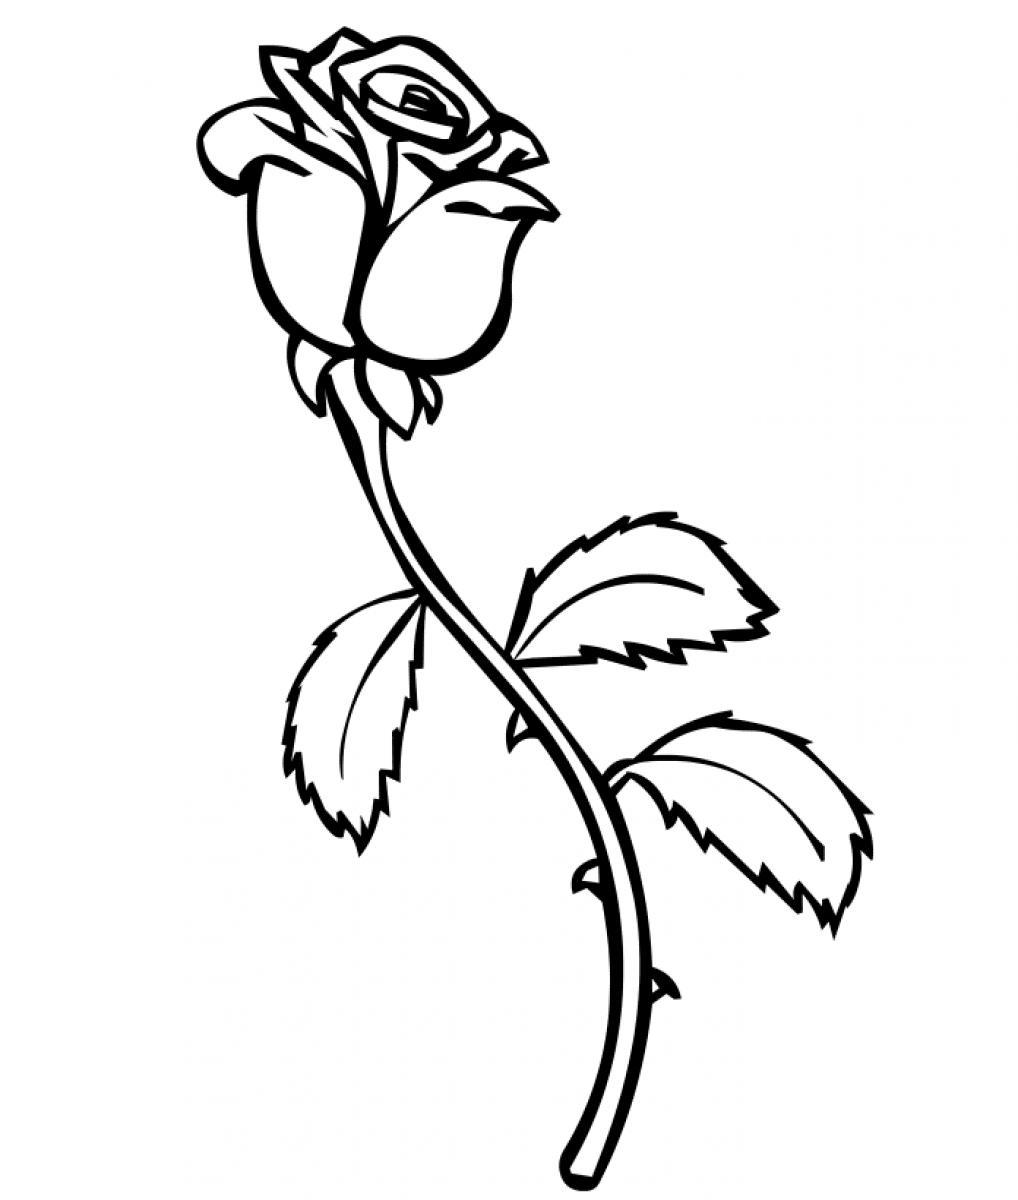 red rose rose coloring pages beautiful rose for valentine coloring page beautiful rose rose rose red pages coloring